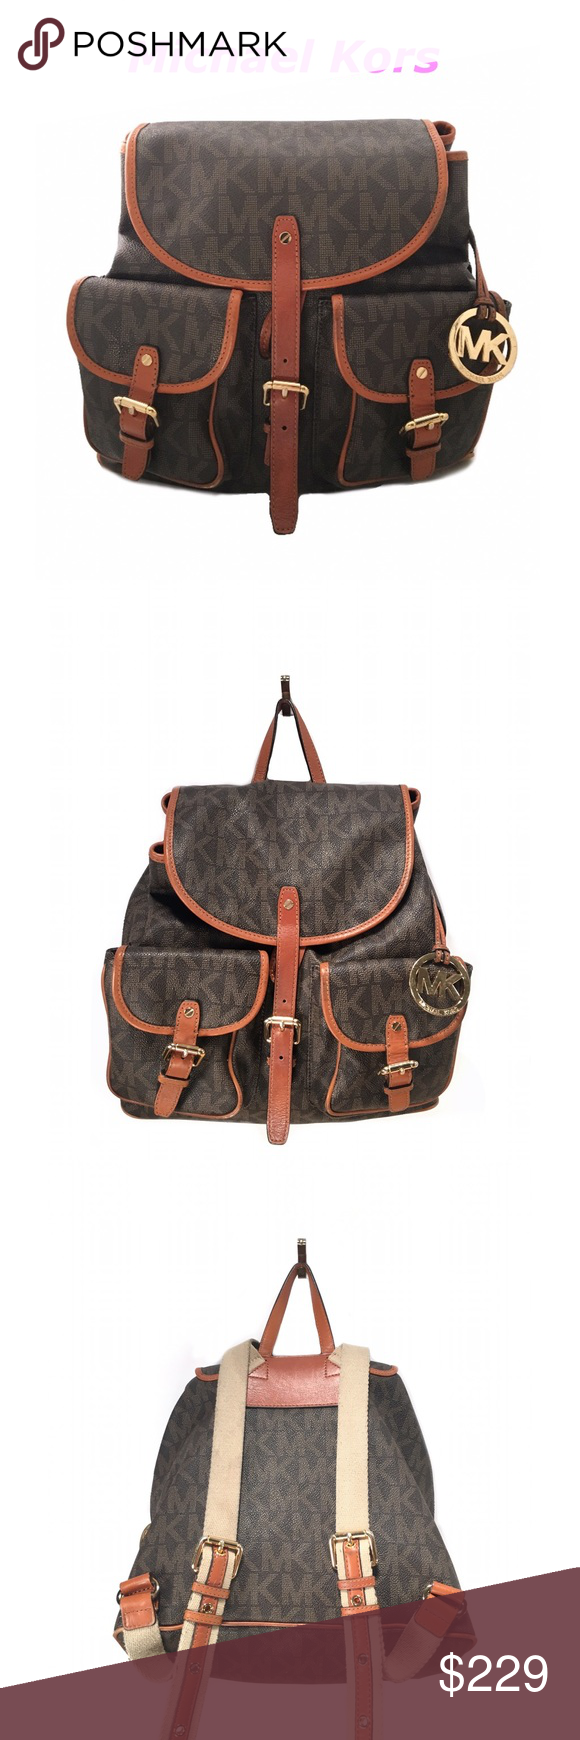 Michael Kors Monogram Leather Backpack ️100 Authentic